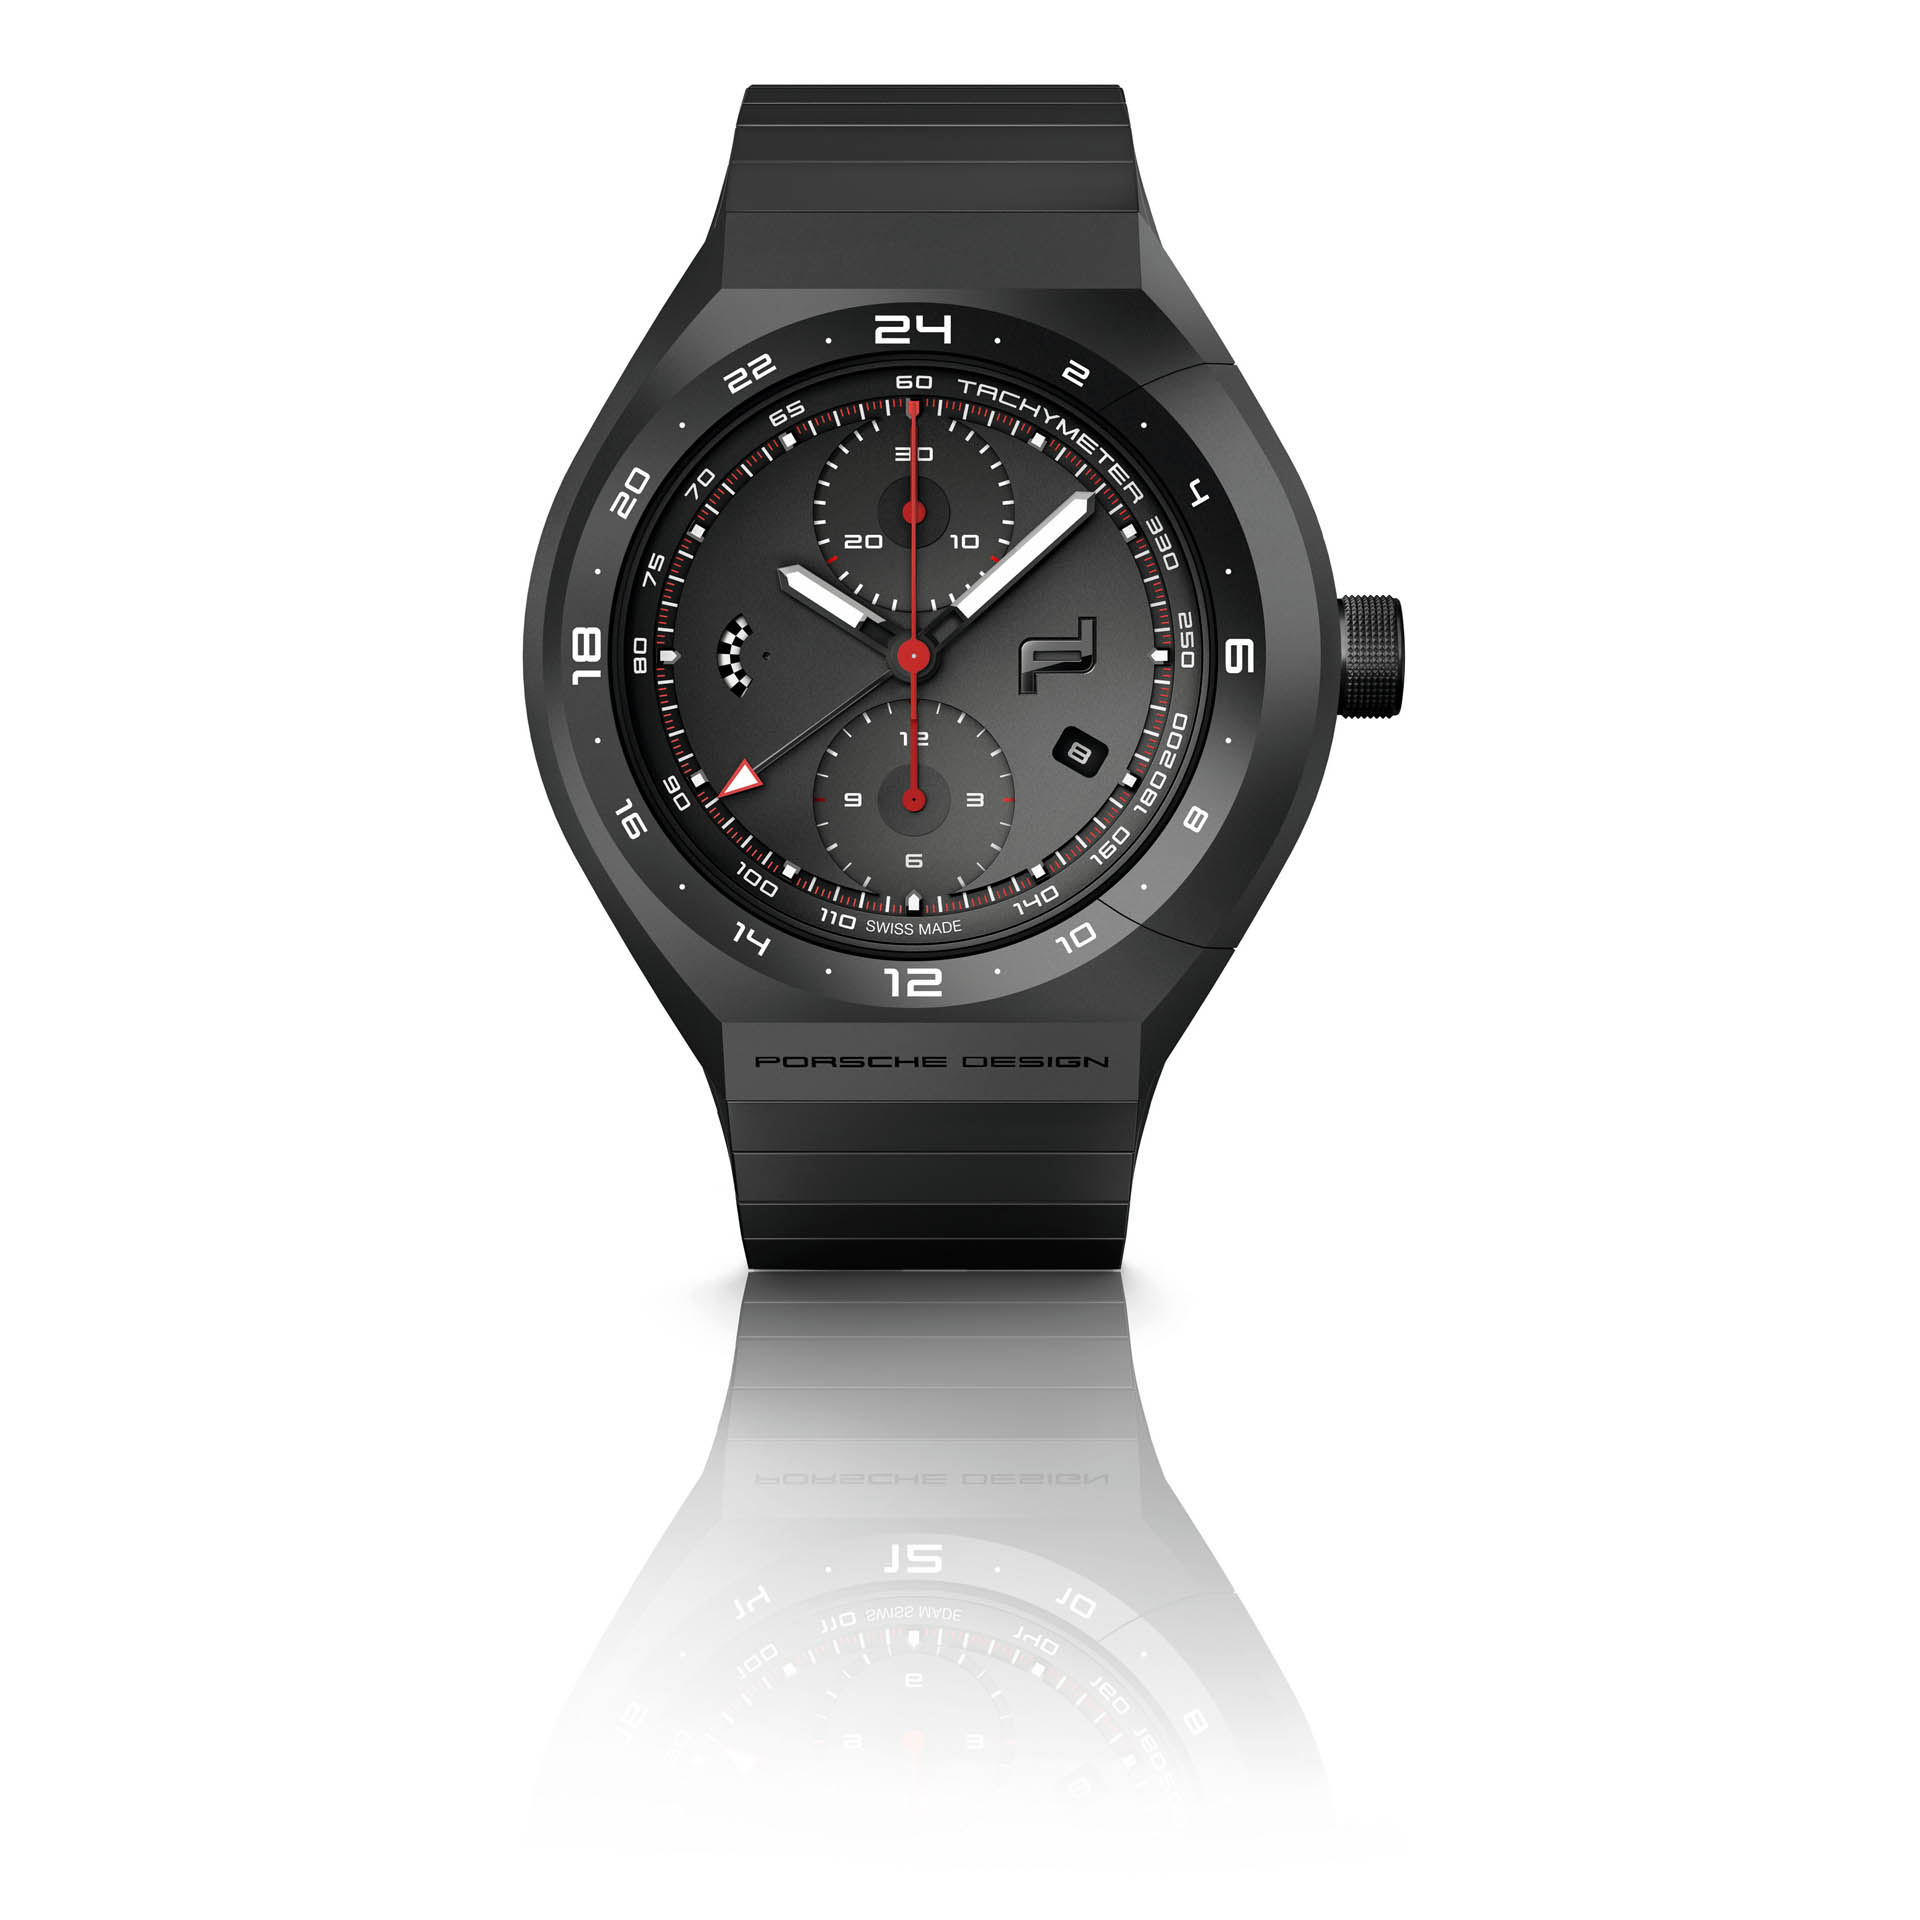 monobloc_actuator_24h_chronotimer-all-black_1-copy